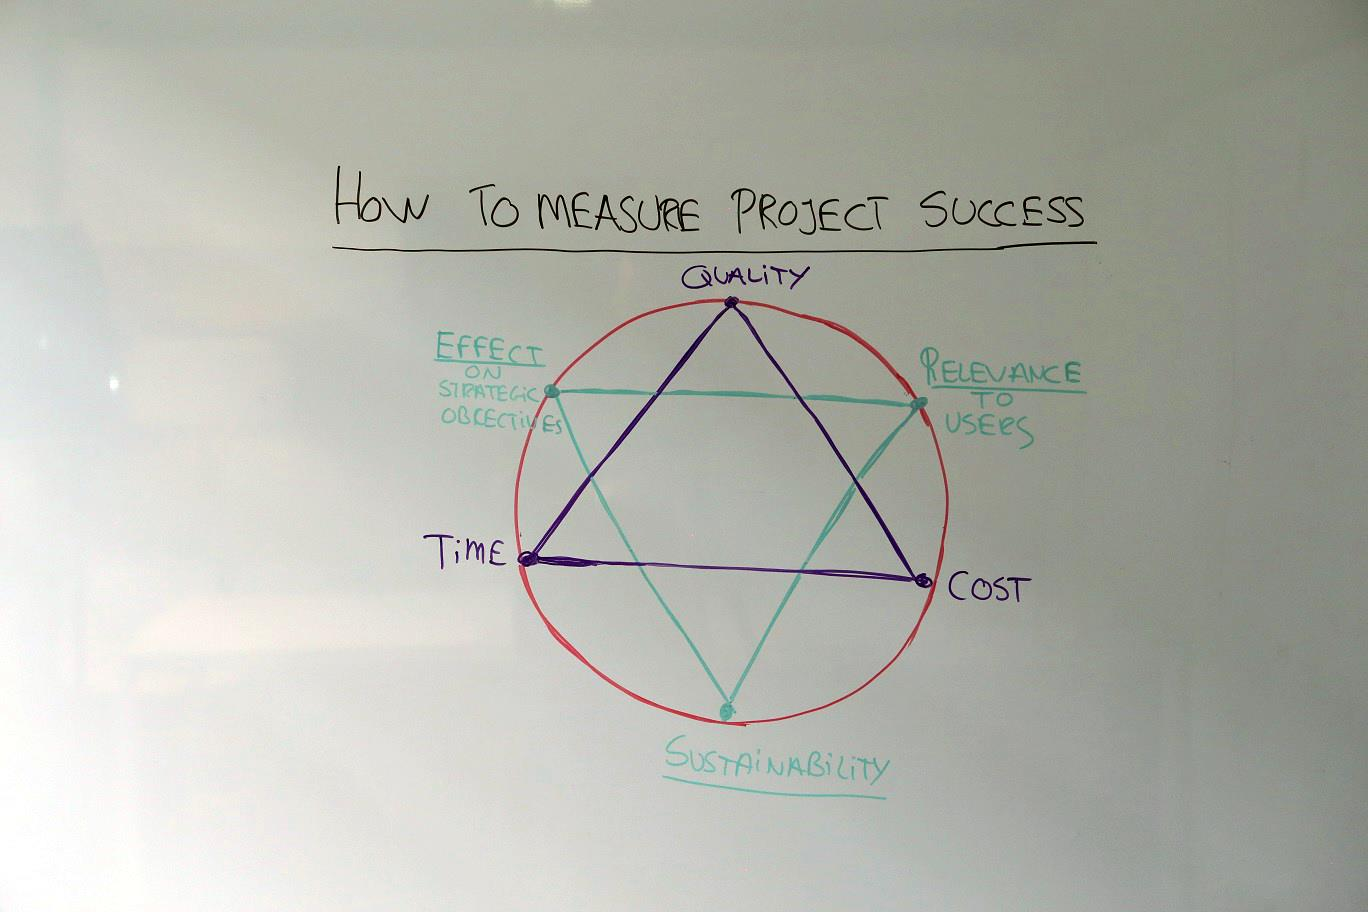 How to Measure Project Success  ProjectManagercom